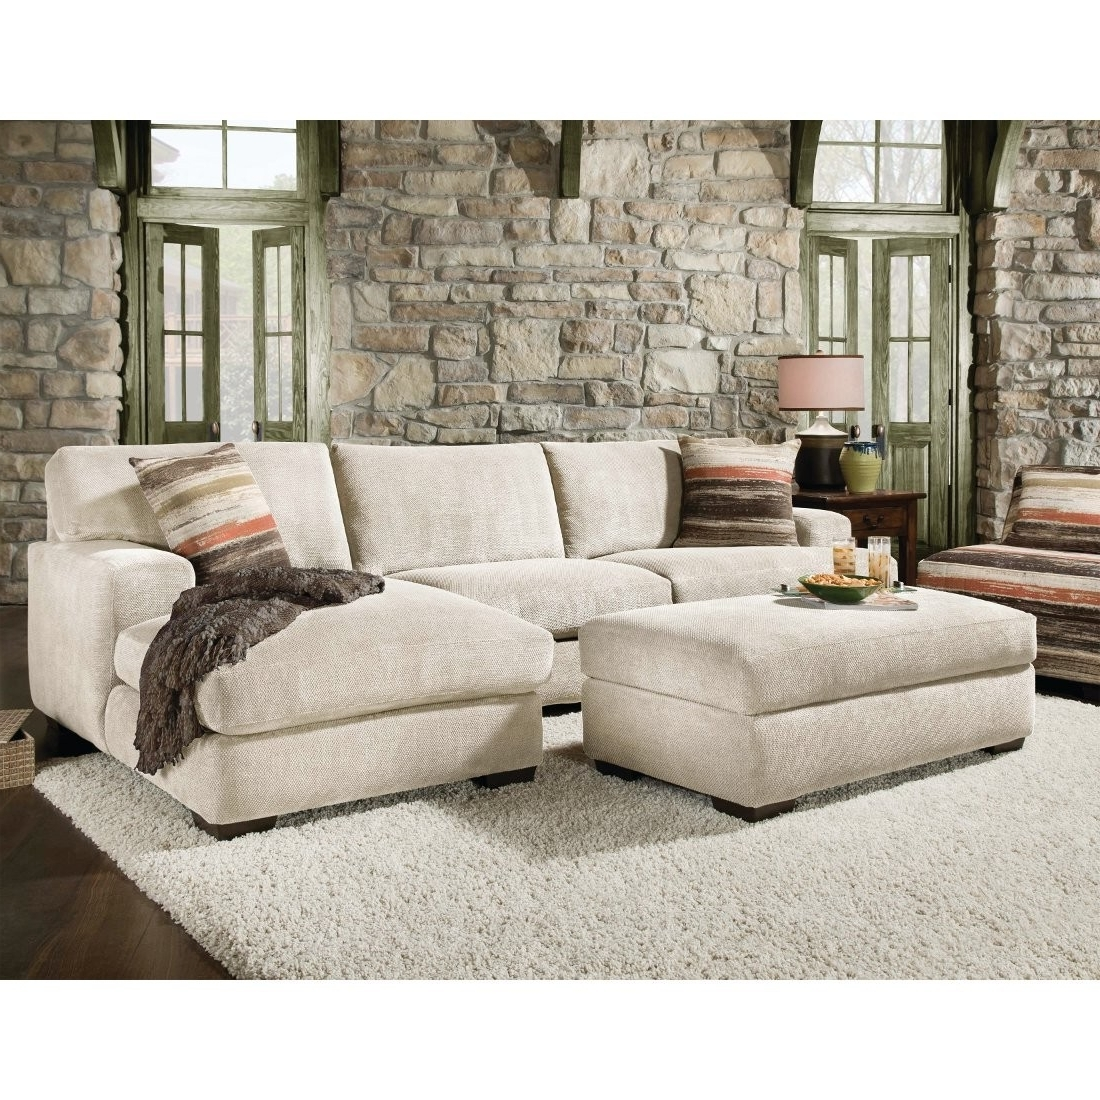 Cozy Sectional Sofa With Chaise And Ottoman 29 About Remodel Down Regarding Most Up To Date Cozy Sectional Sofas (View 5 of 20)